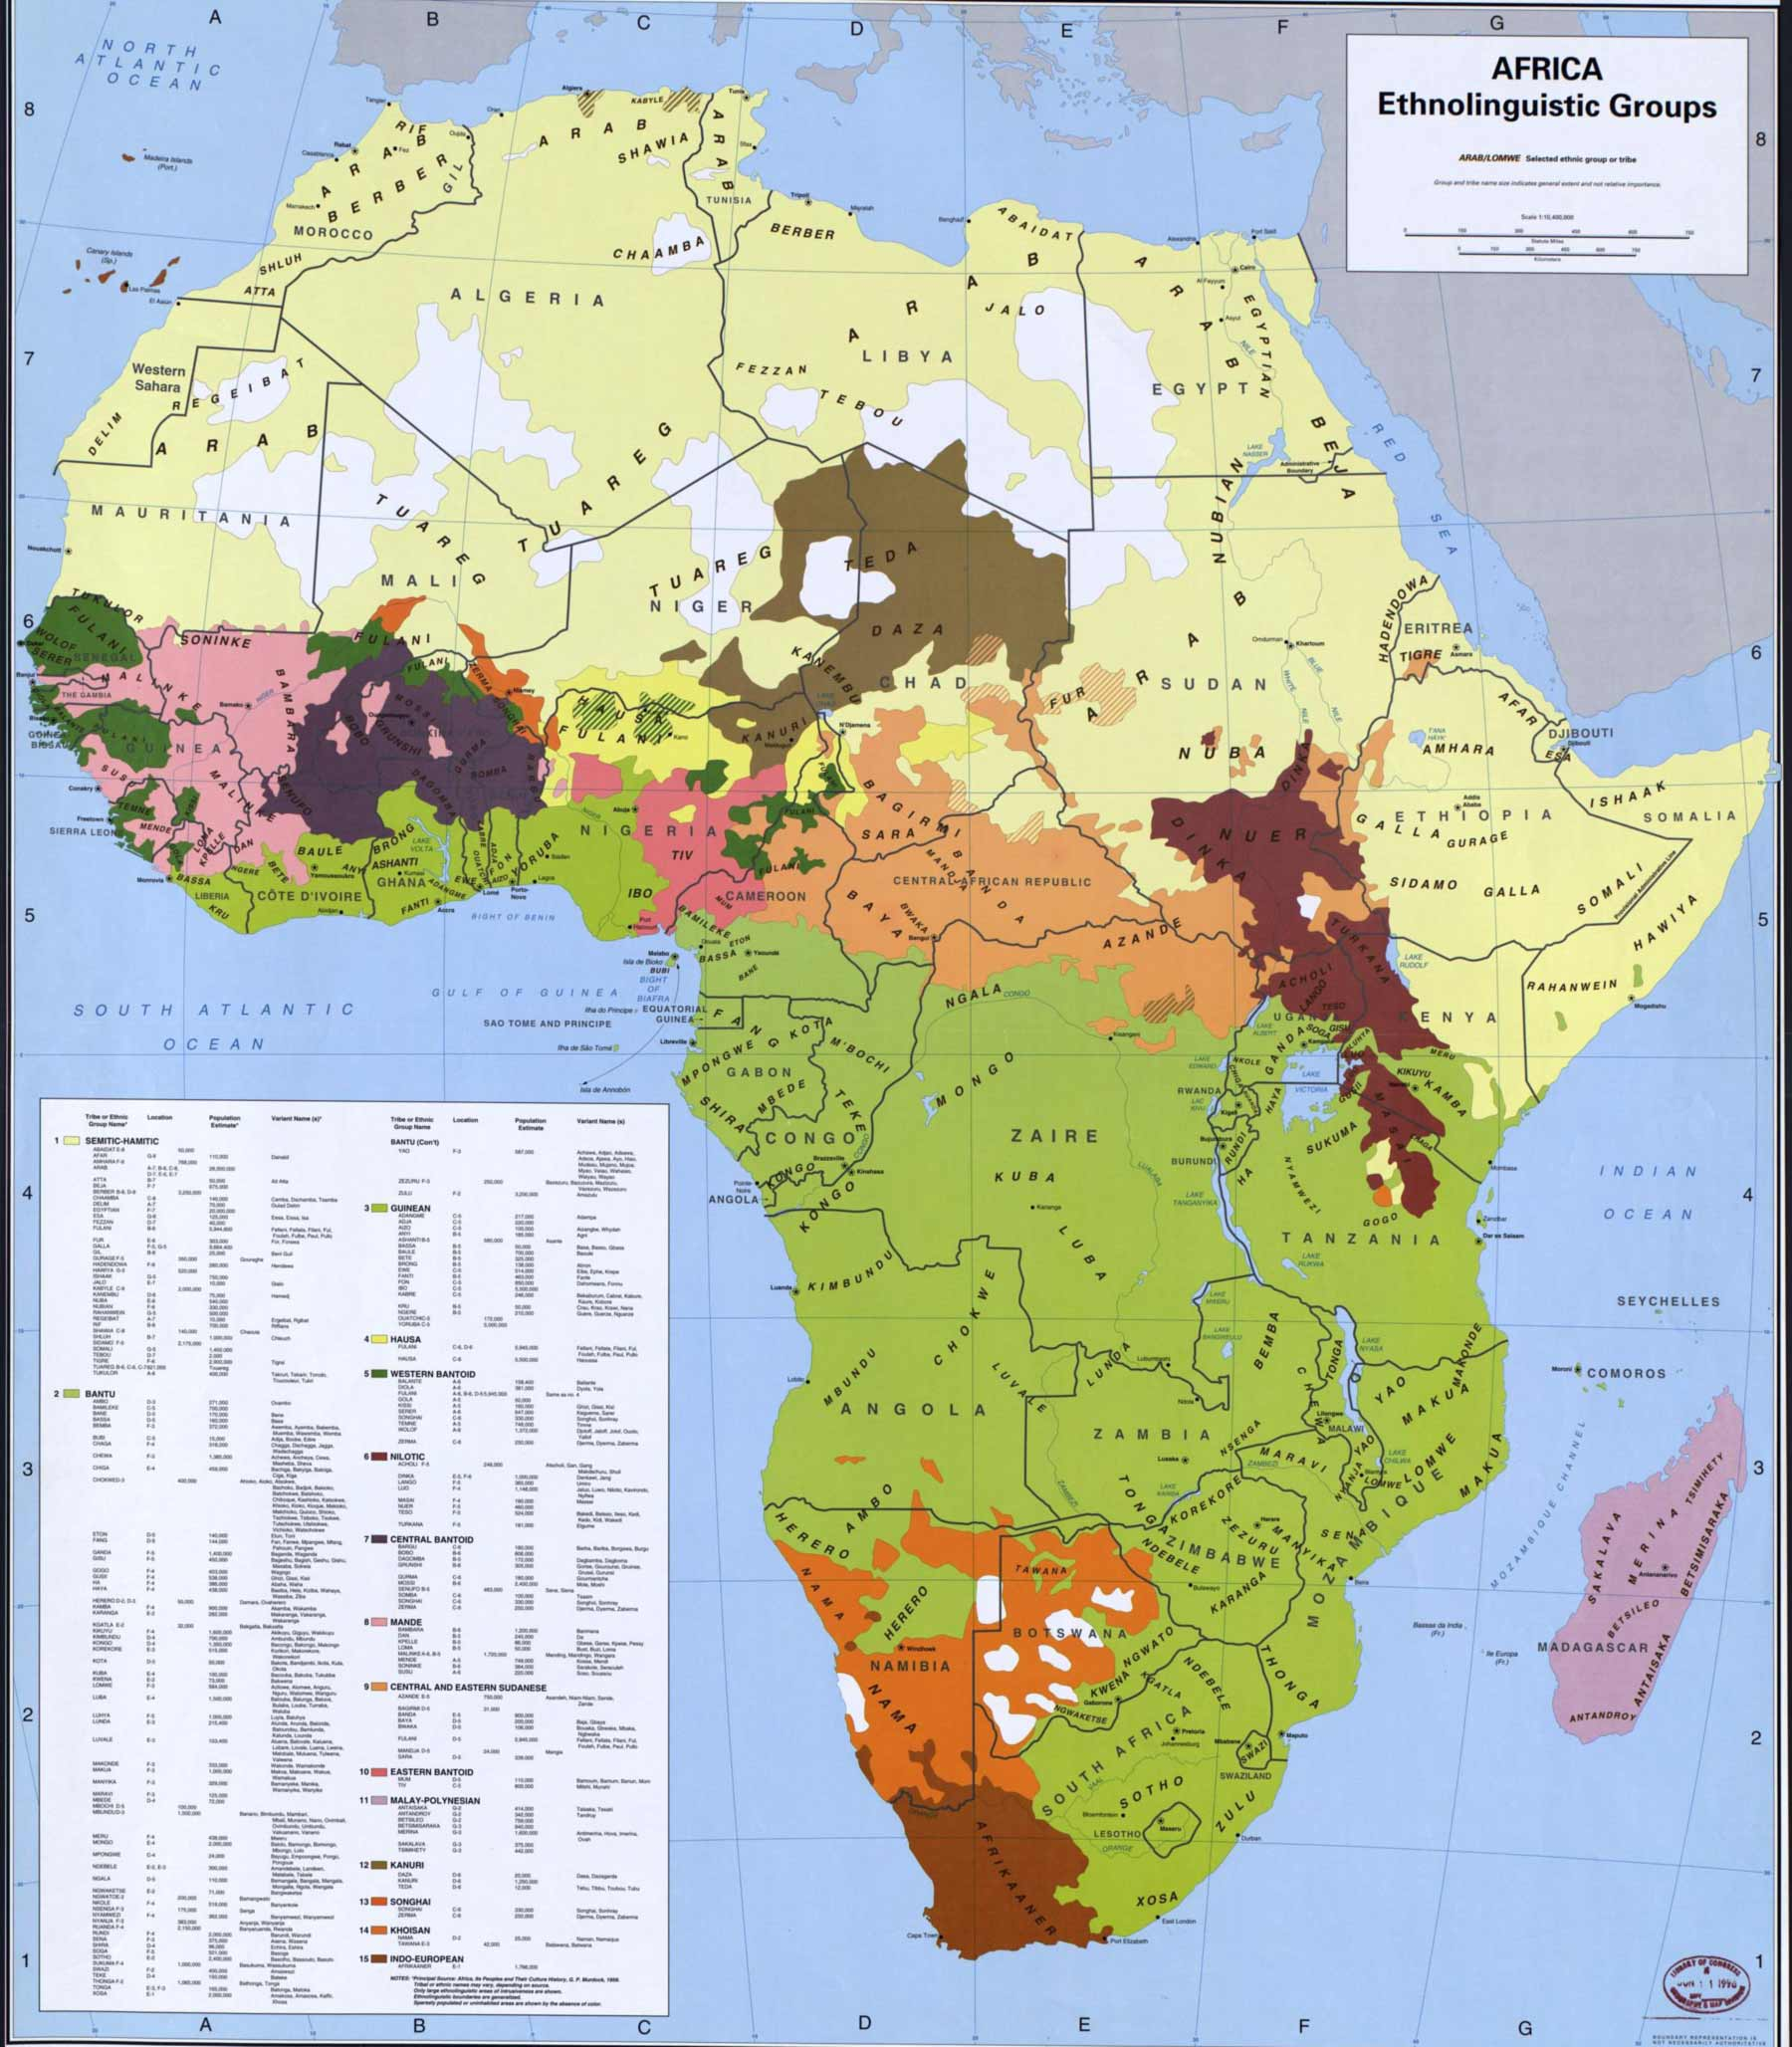 Africa Ethnic Groups 1996 large map